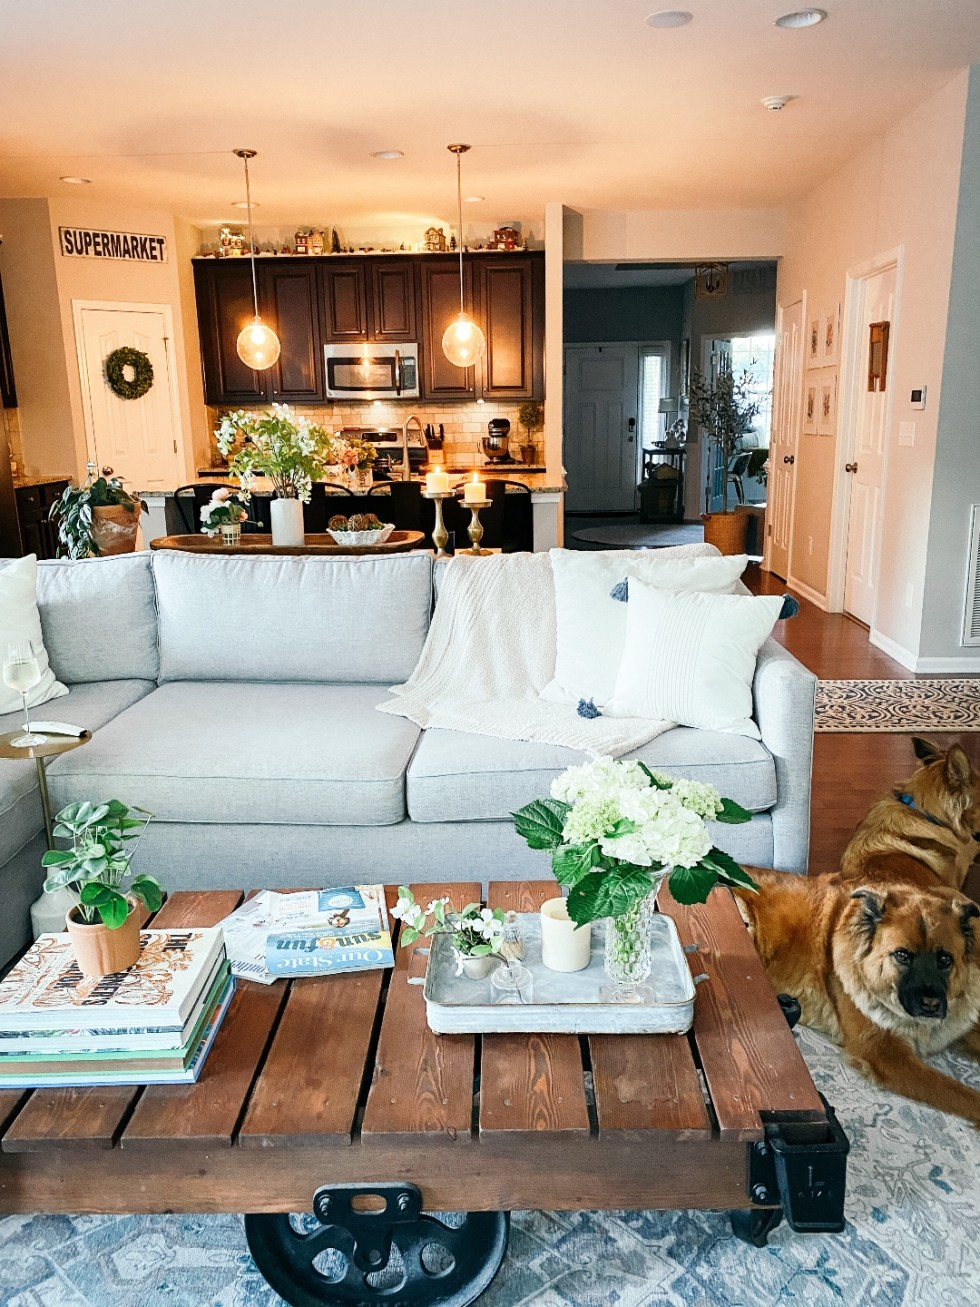 Room Reveal: Blue and Gray Living Room Ideas - I'm Fixin' To - @imfixintoblog | Blue and Grey Living Room Ideas by popular NC life and style blog, I'm Fixin' To: image of a living room decorated with a wooden pallet coffee table, grey sectional sofa, blue and white area rug, and potted house plants.